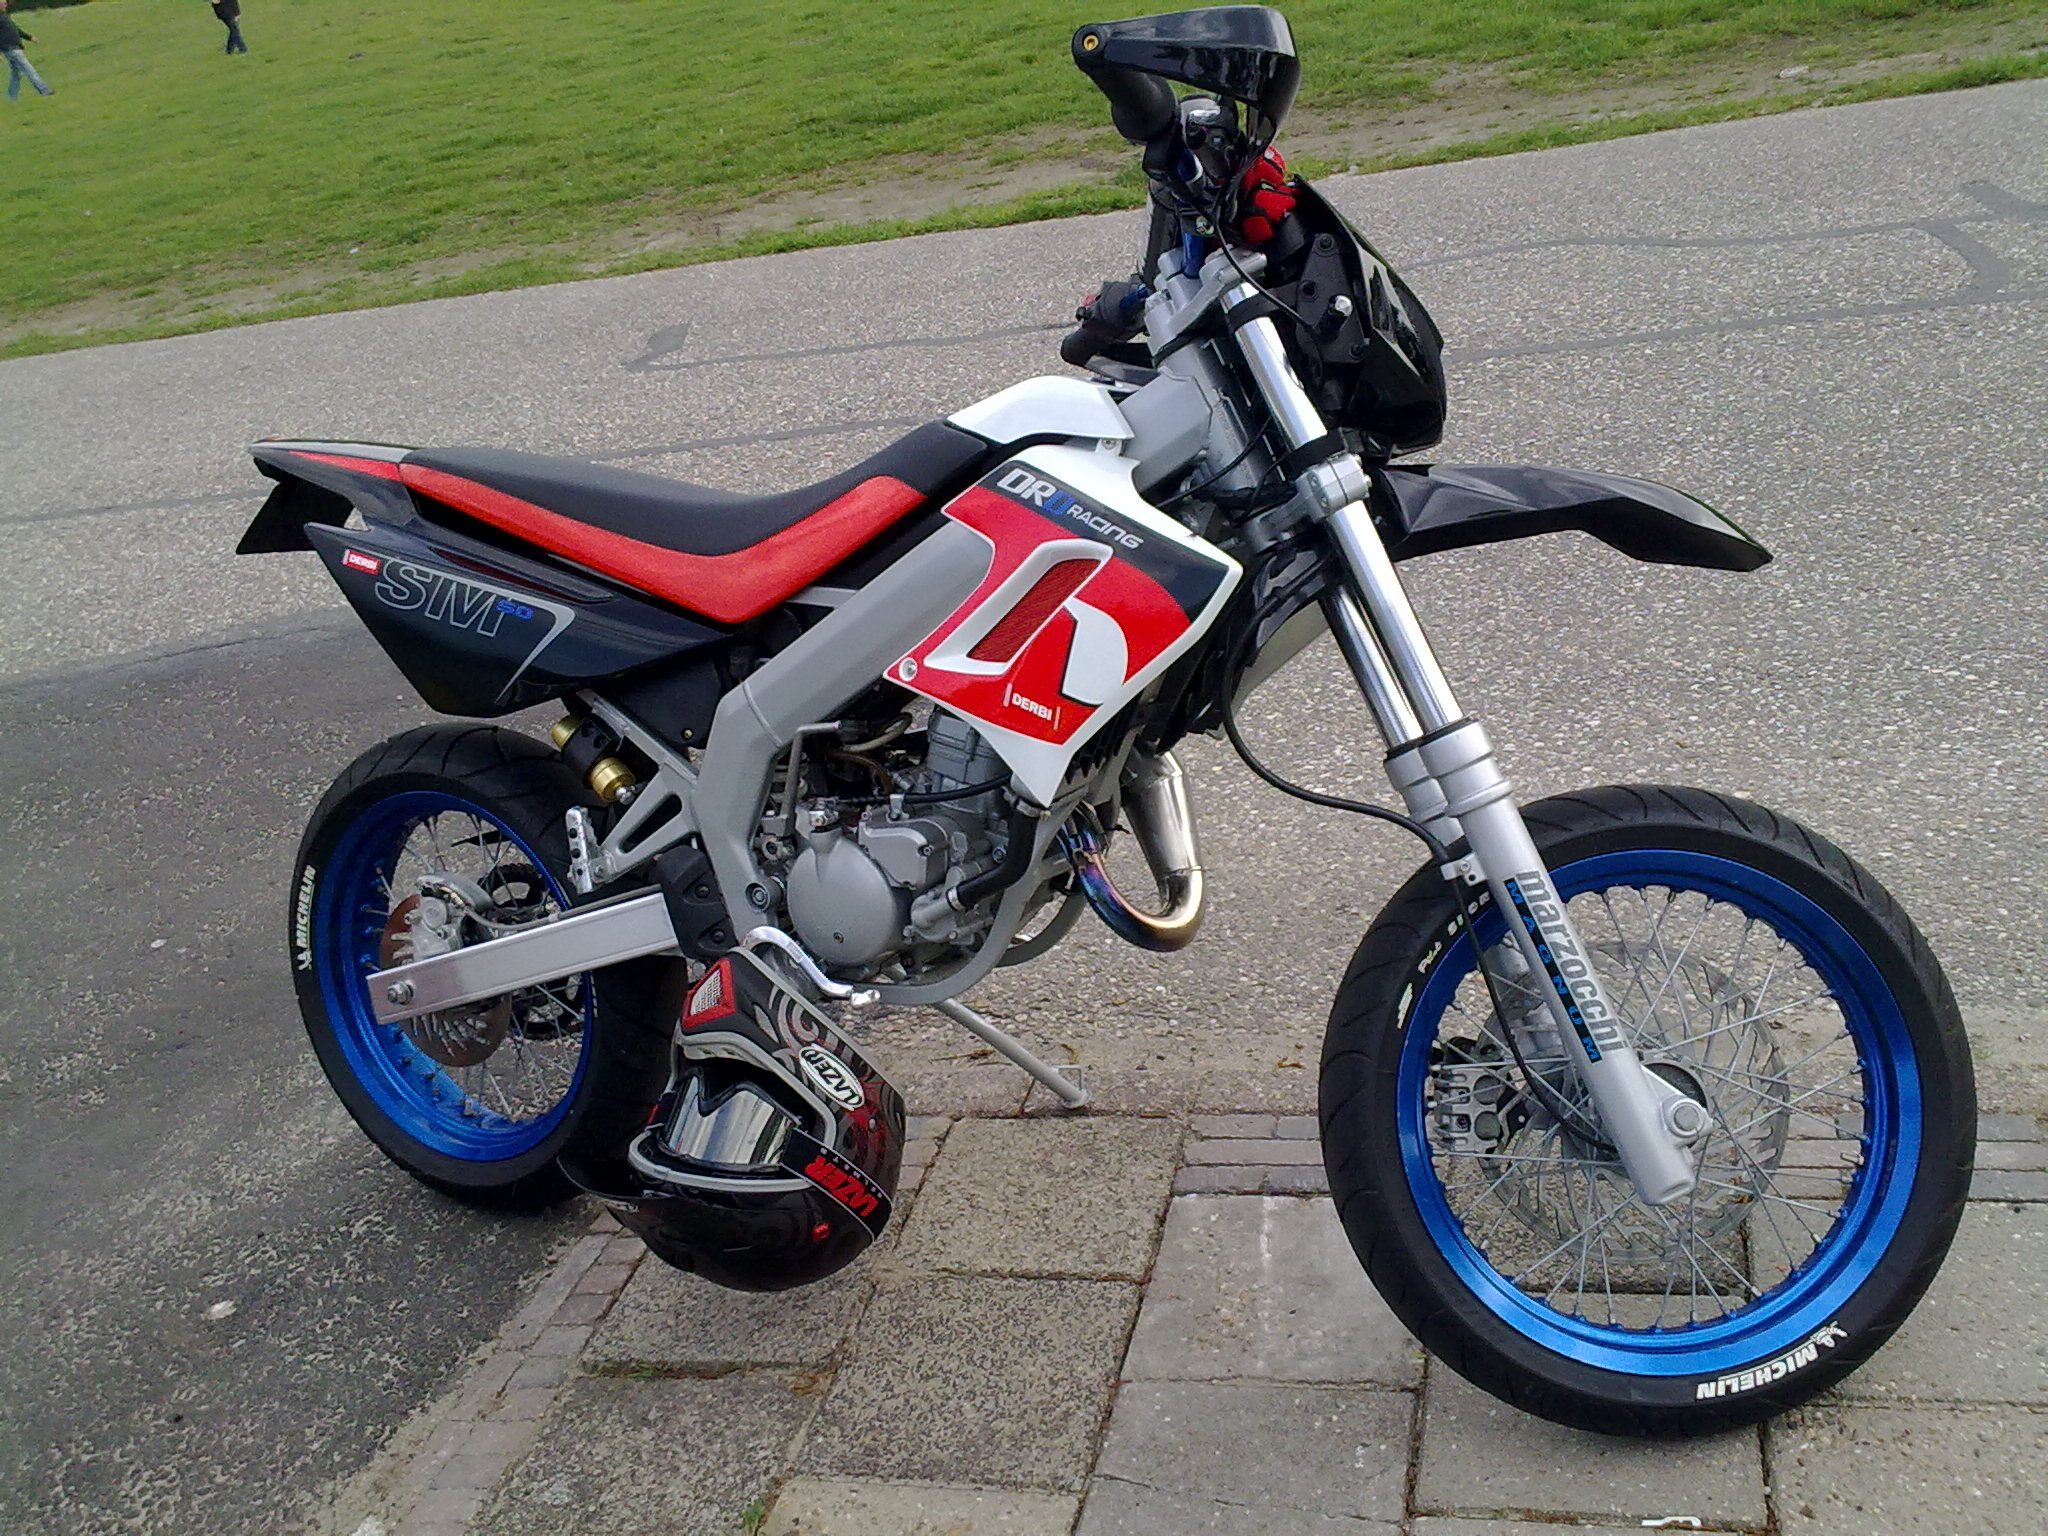 derbi senda drd pro review and photos